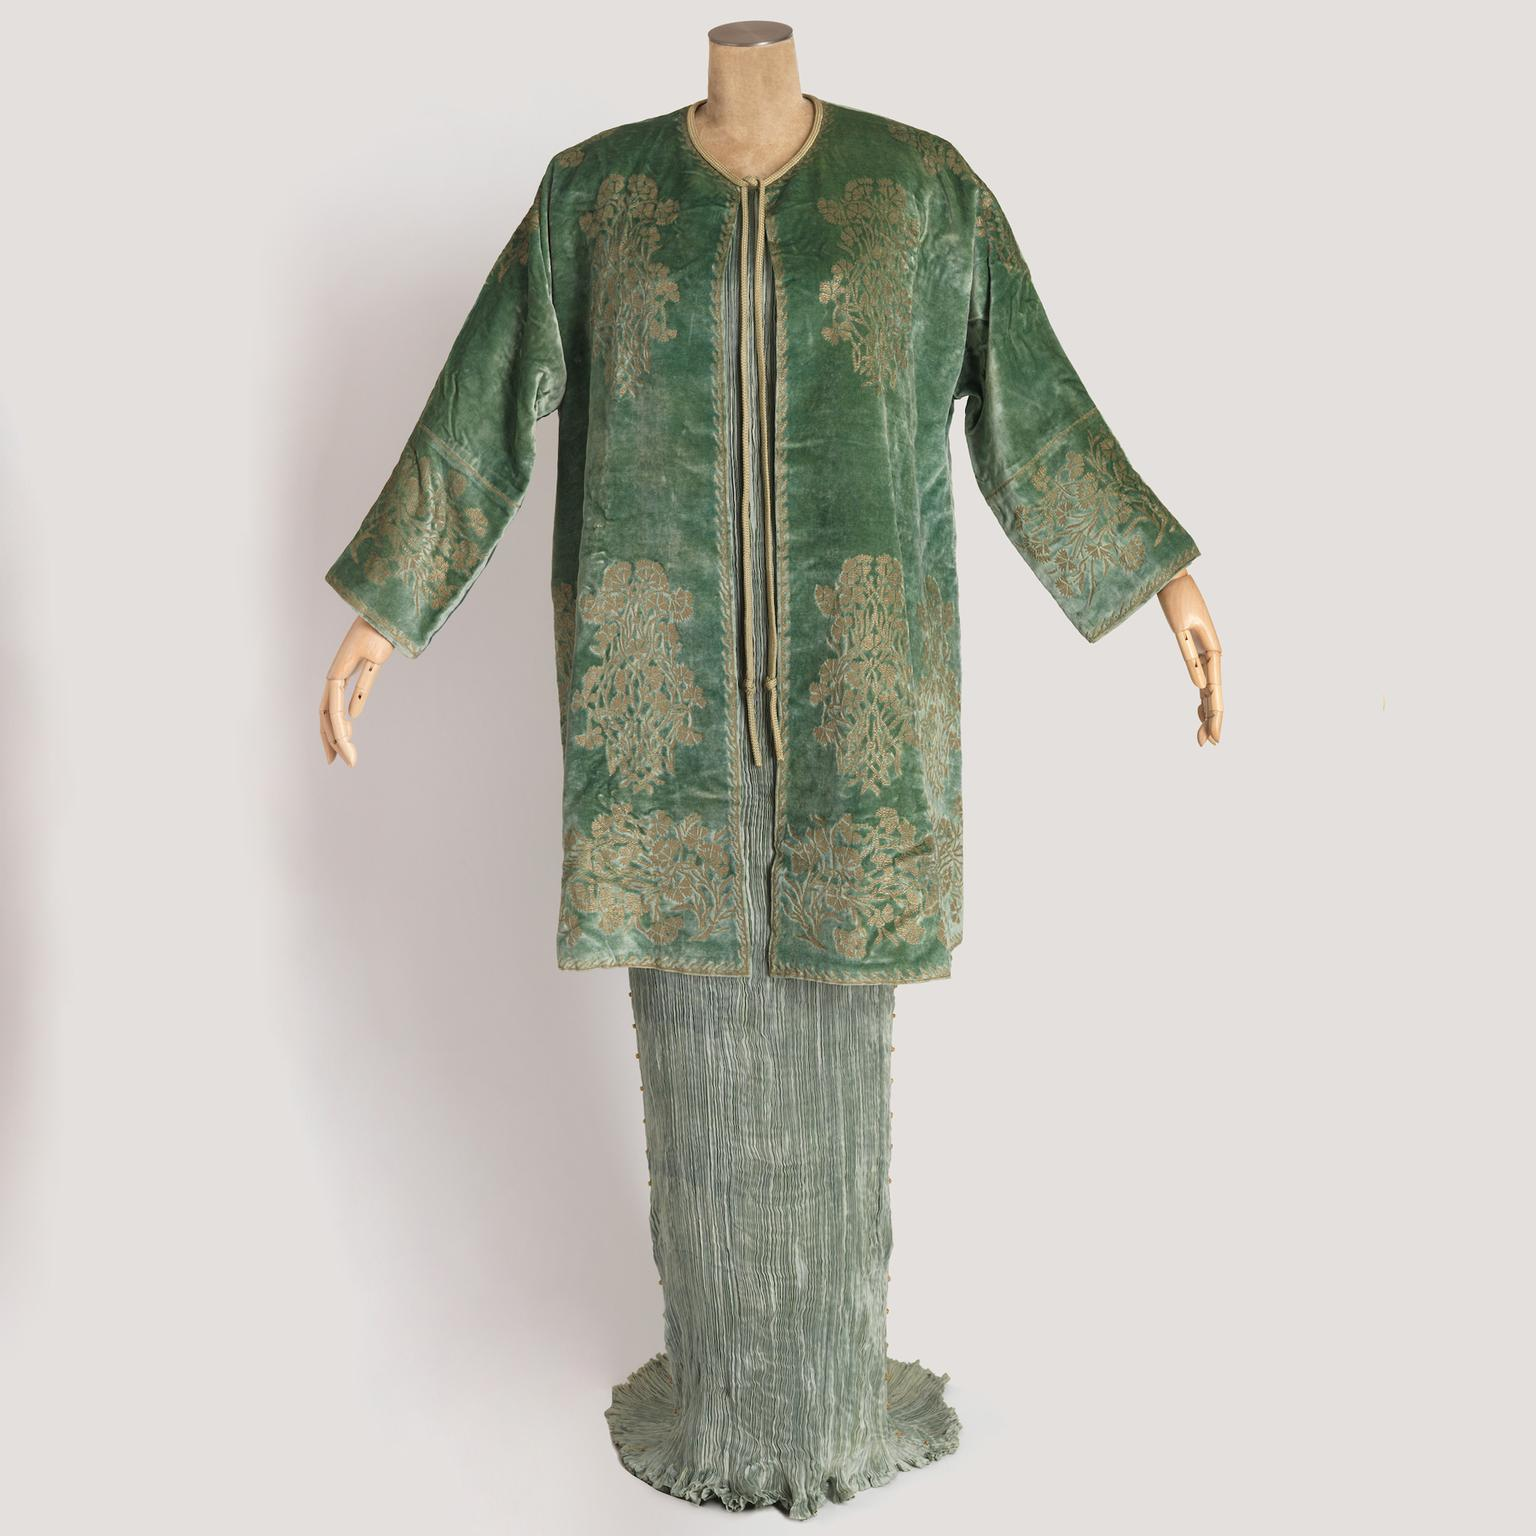 Mariano Fortuny Delphos pleated silk dress and velvet jacket from 1939